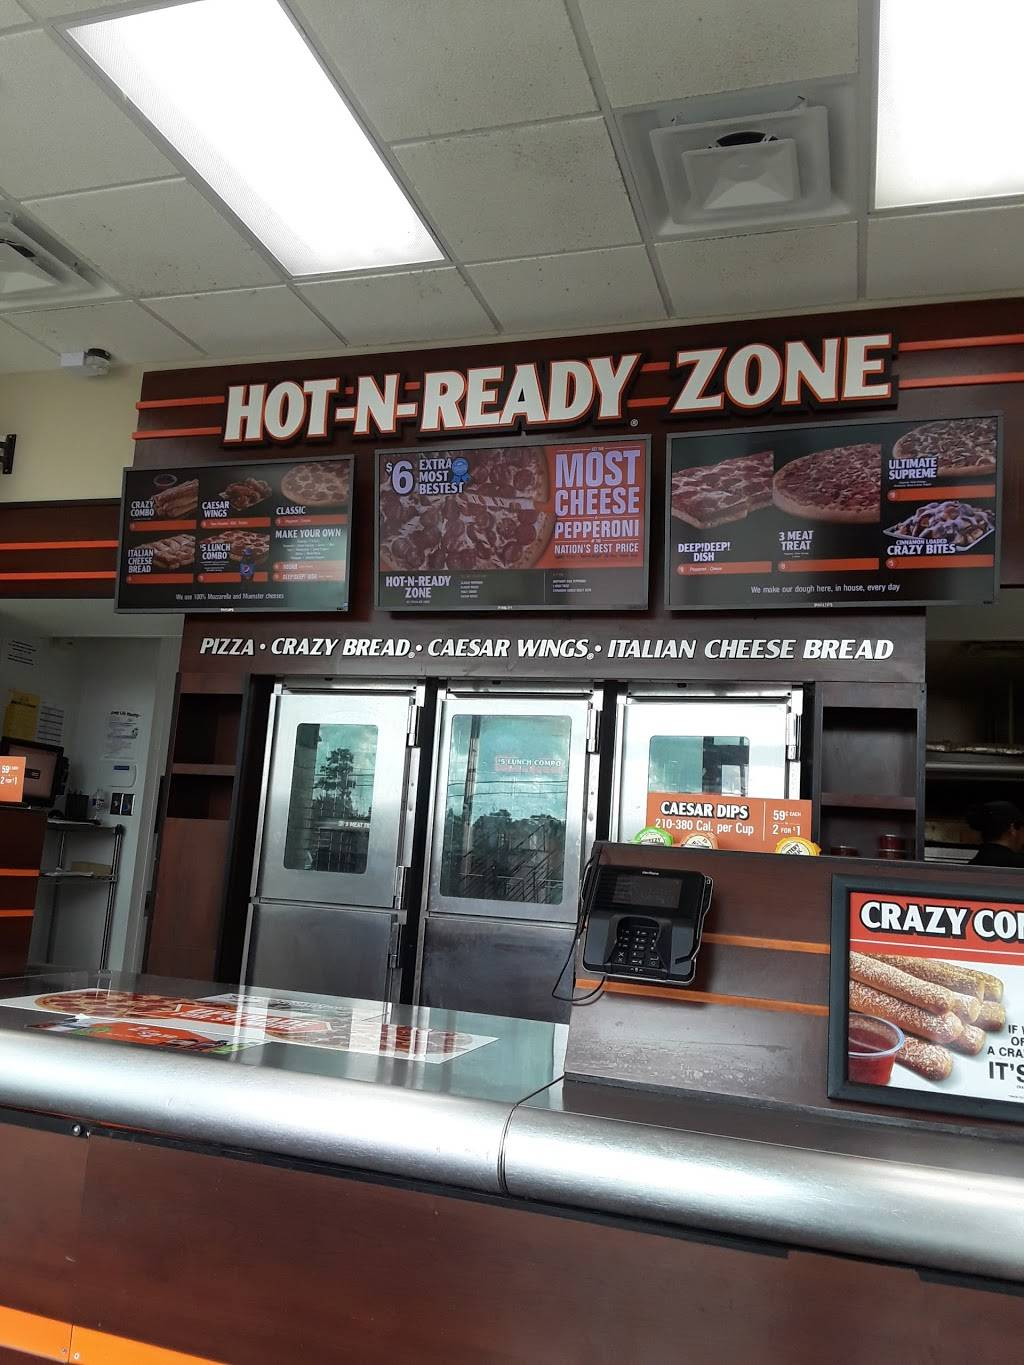 Little Caesars Pizza | meal takeaway | 7815 Farm to Market 1960 Bypass Rd W Ste 6, Humble, TX 77338, USA | 2814460959 OR +1 281-446-0959